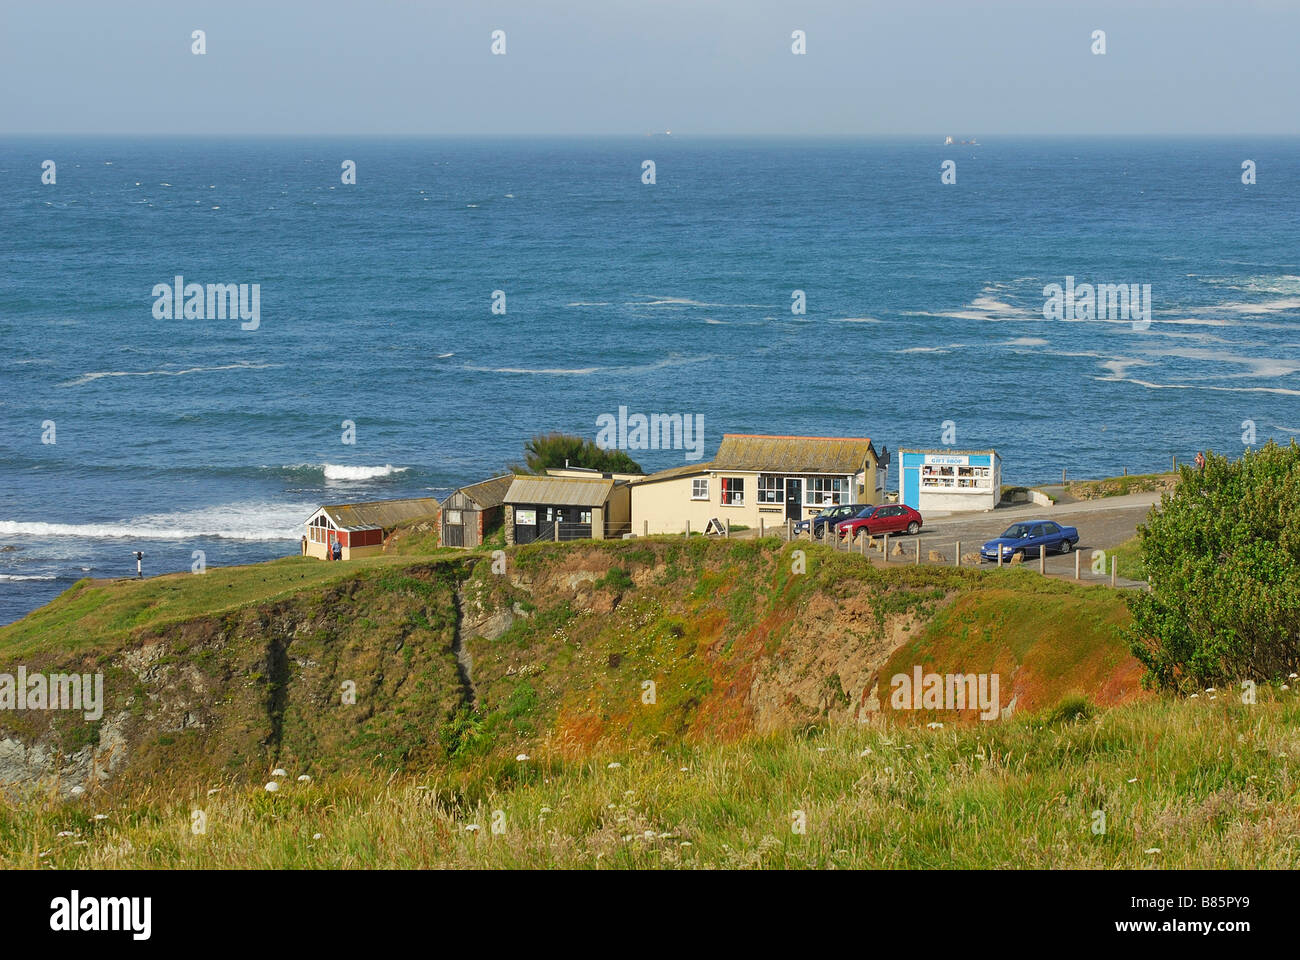 Most southerly cafe, Polpeor, Cornwall, UK Stock Photo